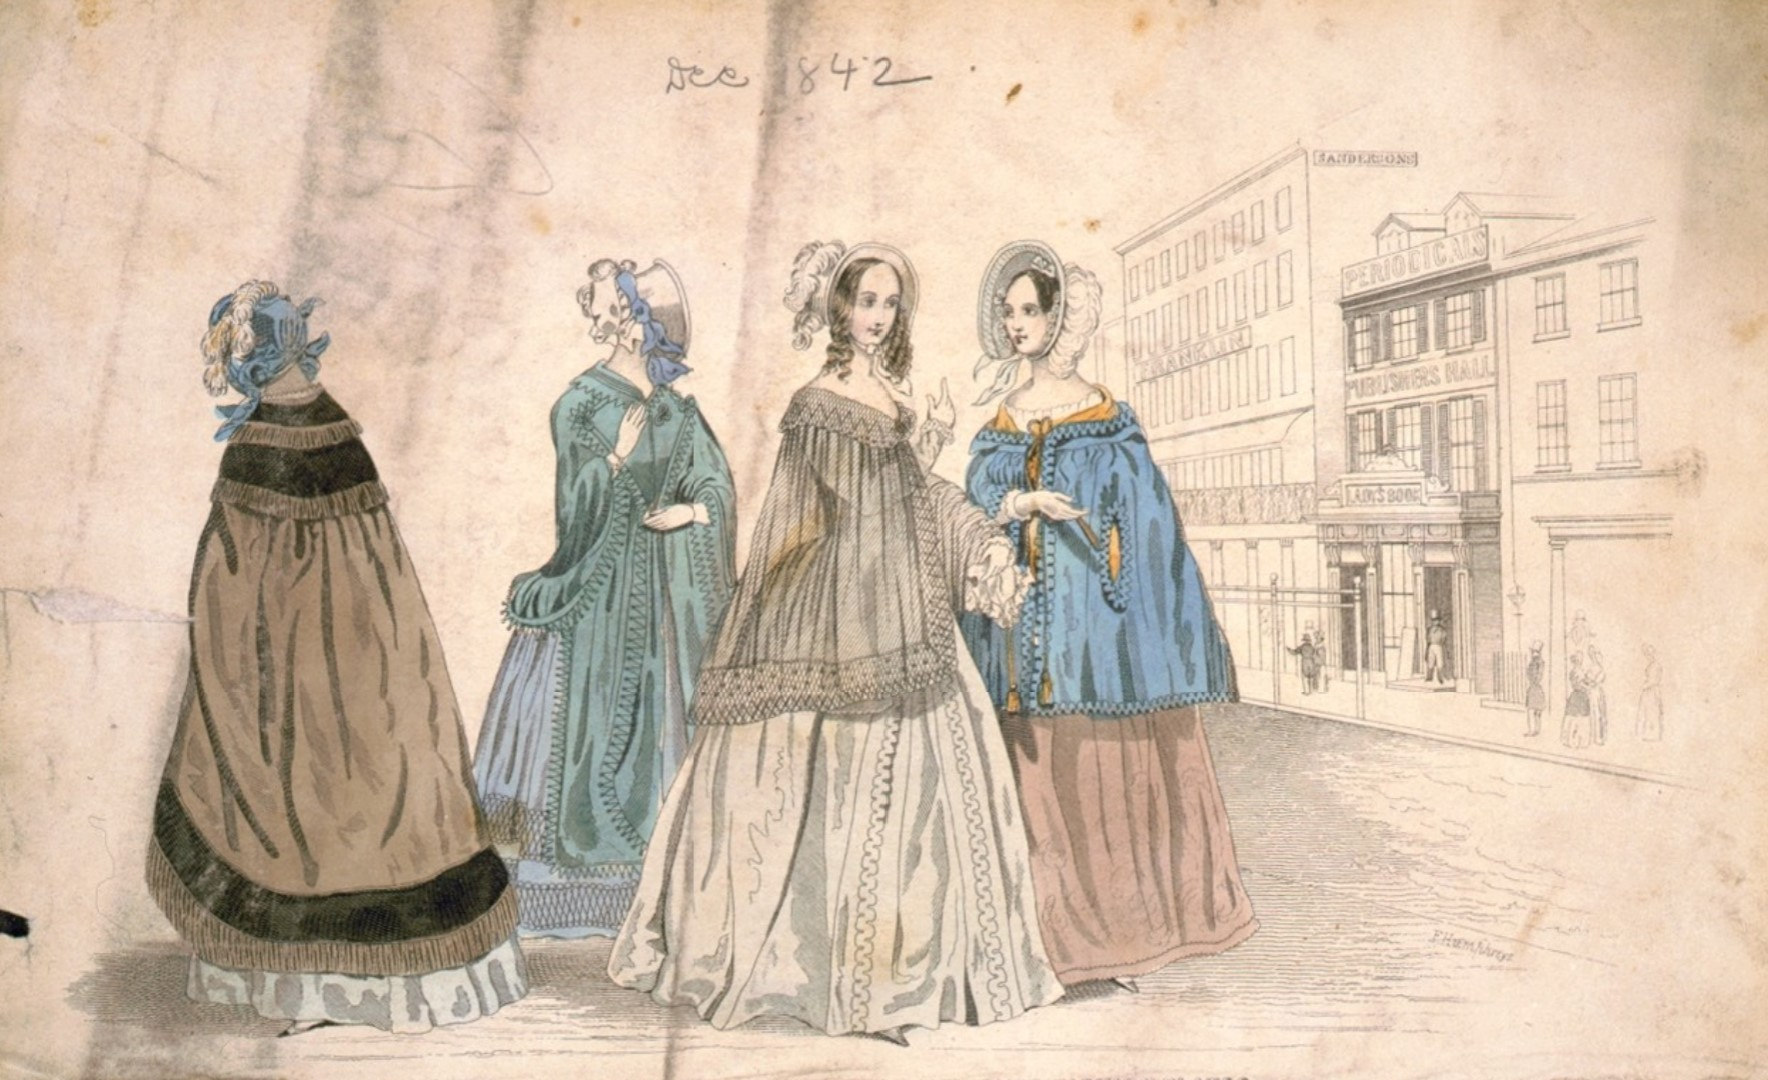 Image 2. 21 of the ladies' book improved fashion plates, F. Humphreys, 1842.